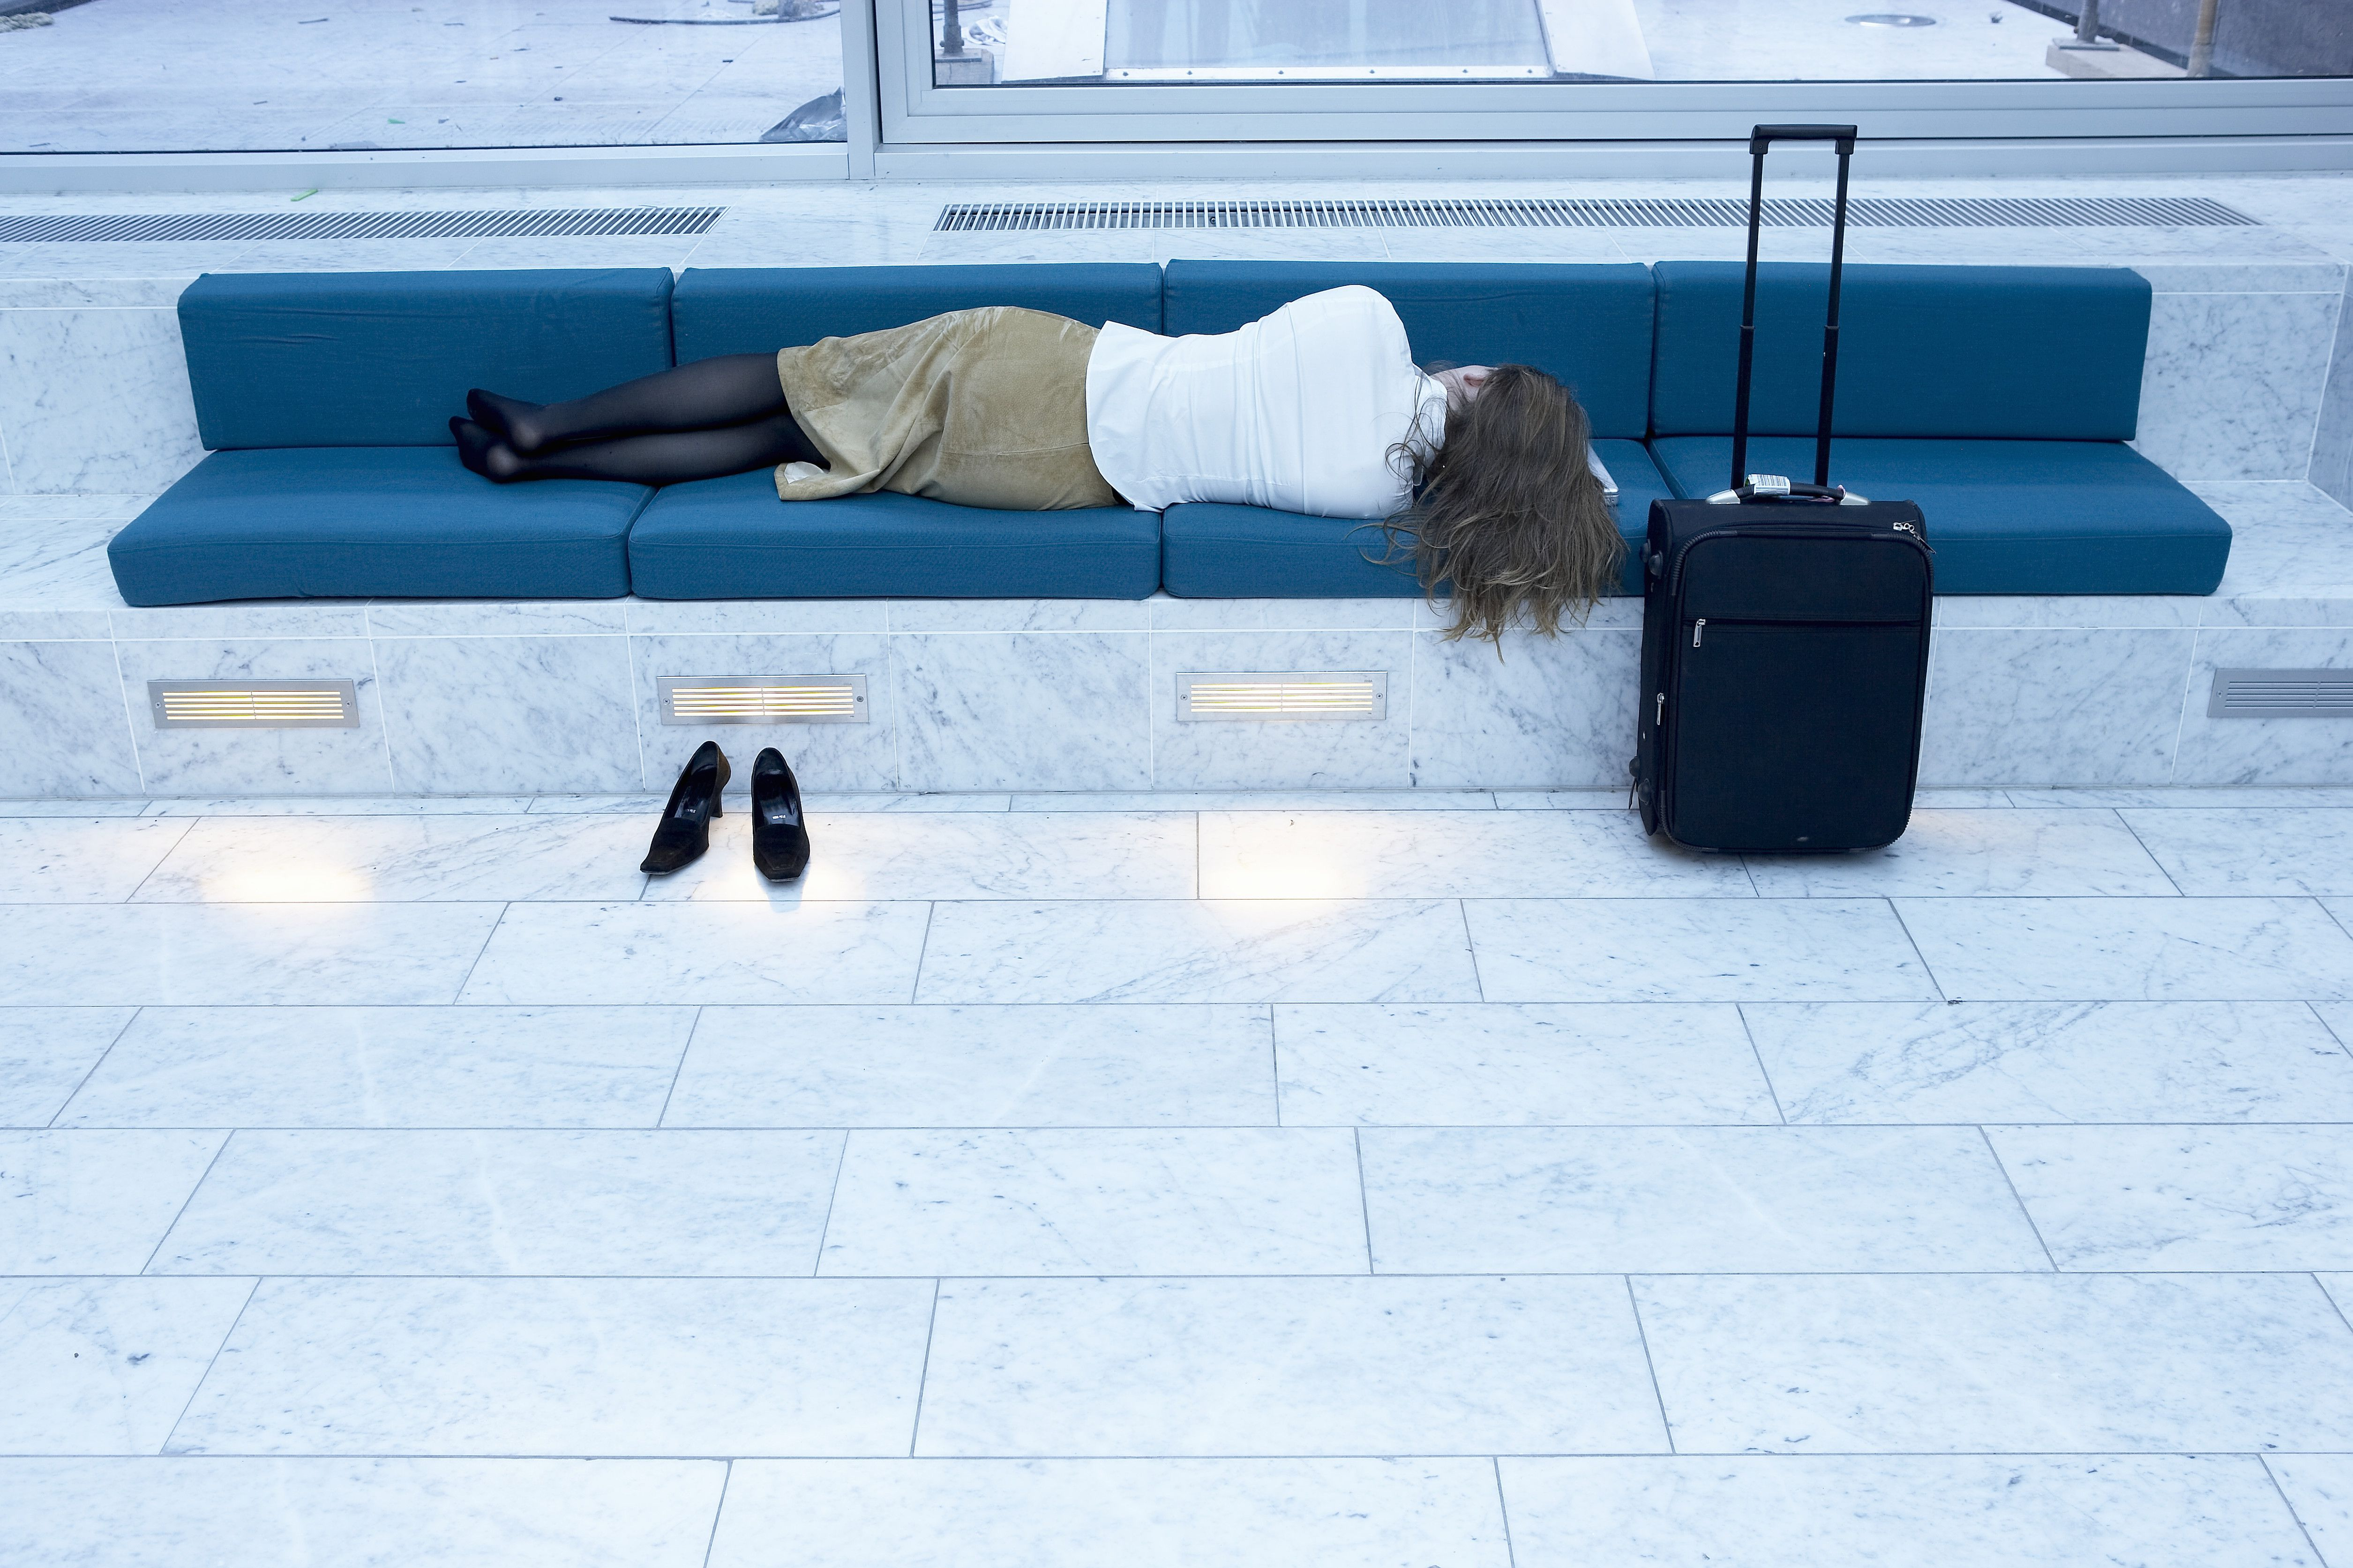 Woman sleeping on bench in airport